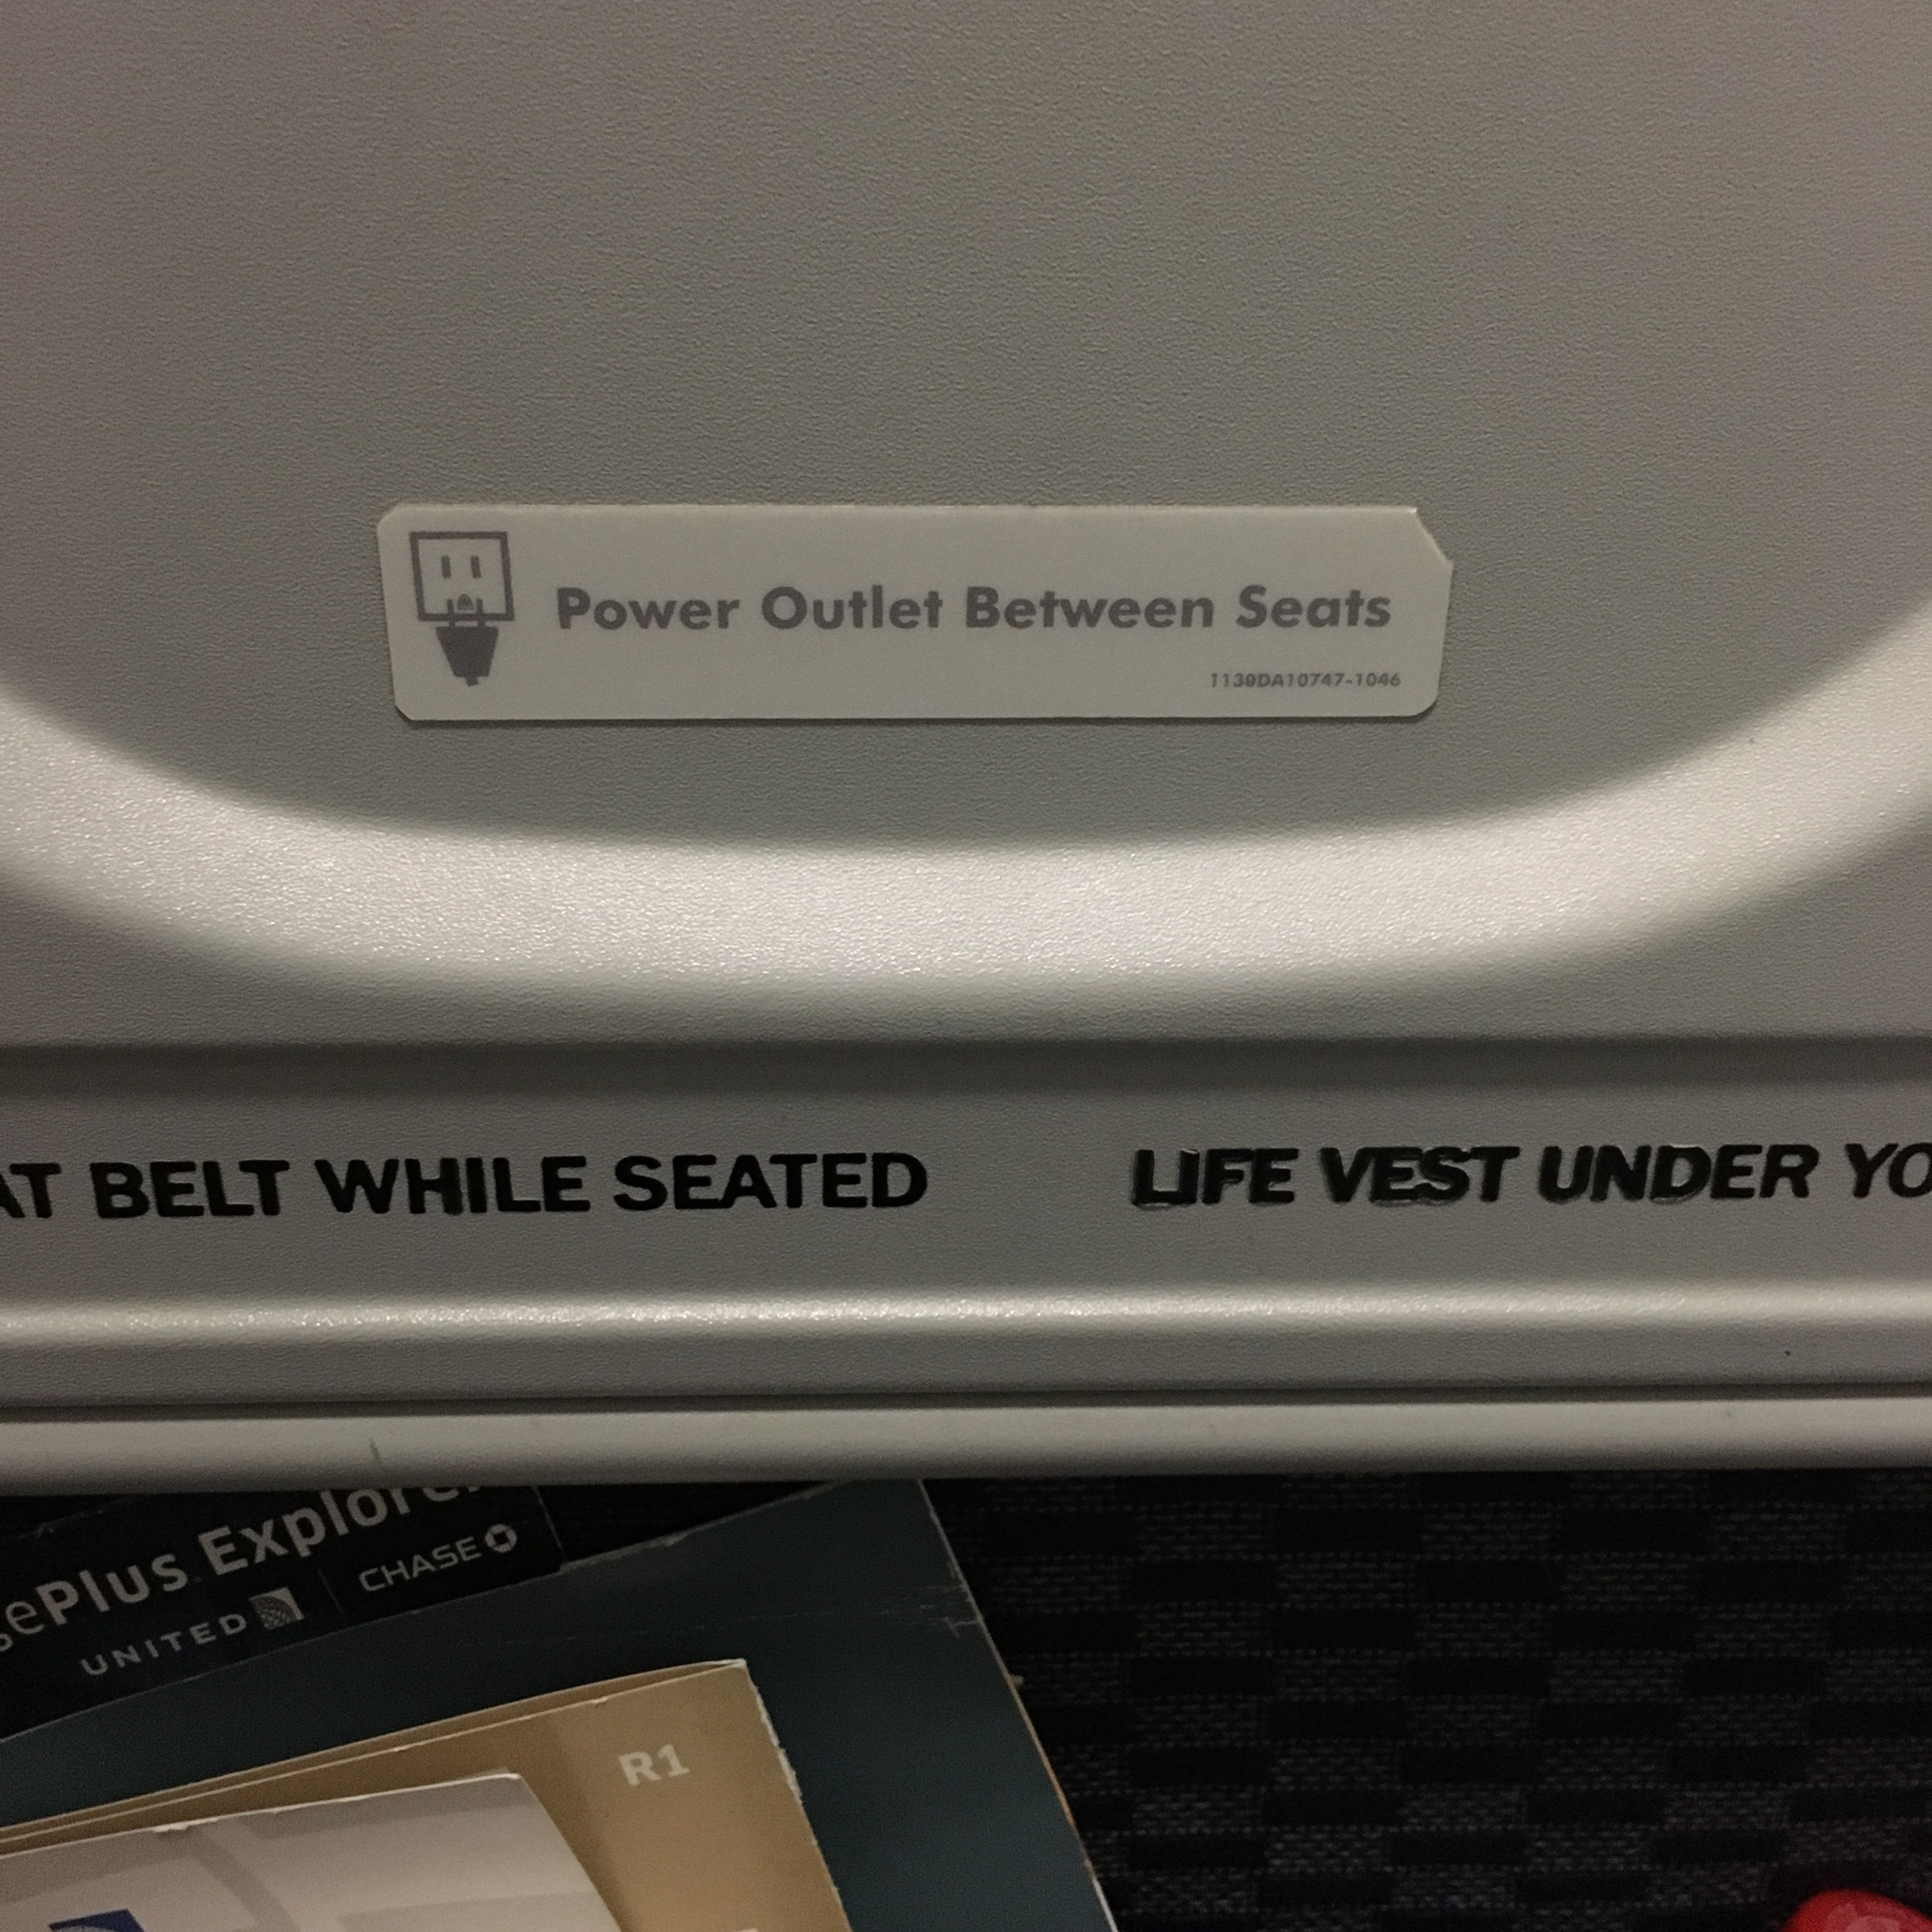 Power Outlets On Planes Rule Unbreakable